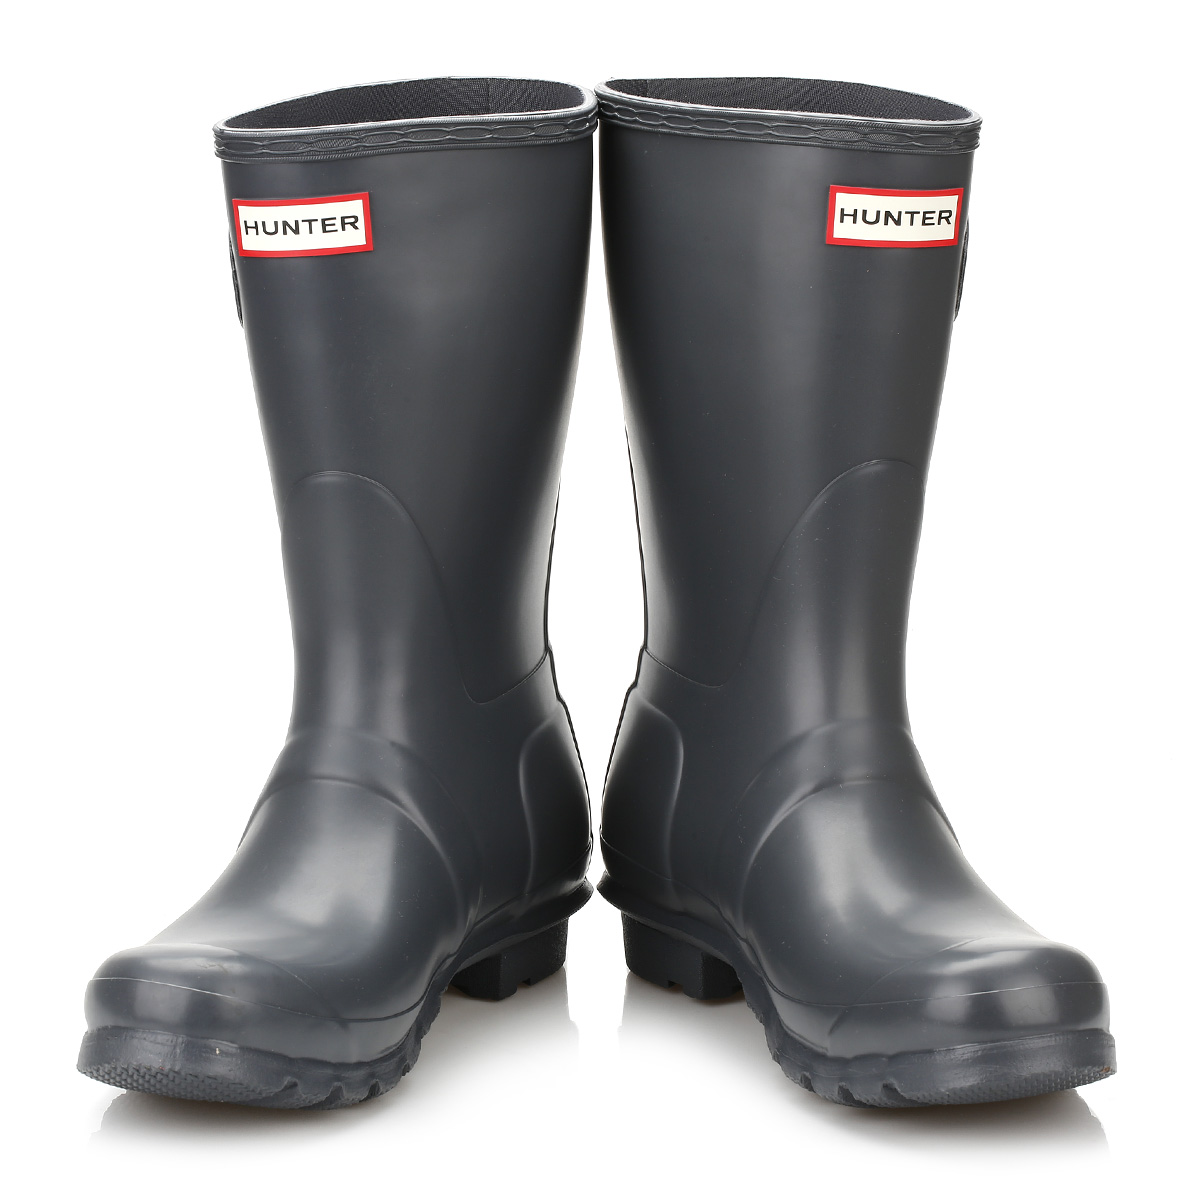 Hunter Womens Mid Calf Wellington Boots, Rubber Shoes ...- photo #50